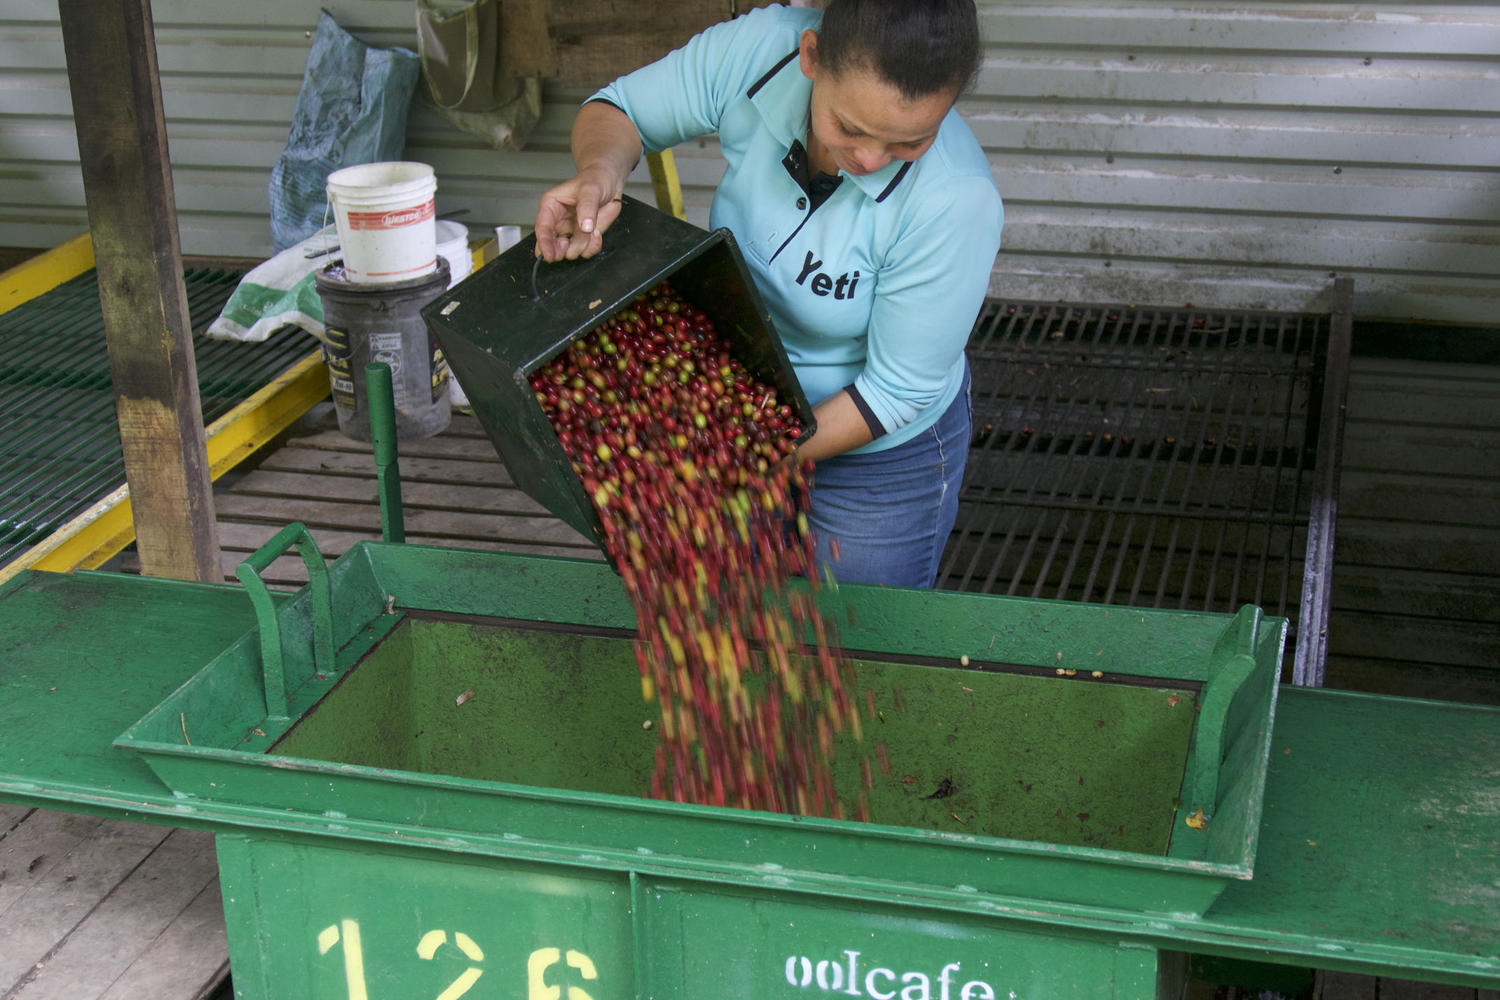 Emptrying the 'cajuela' of beans in the recibidor